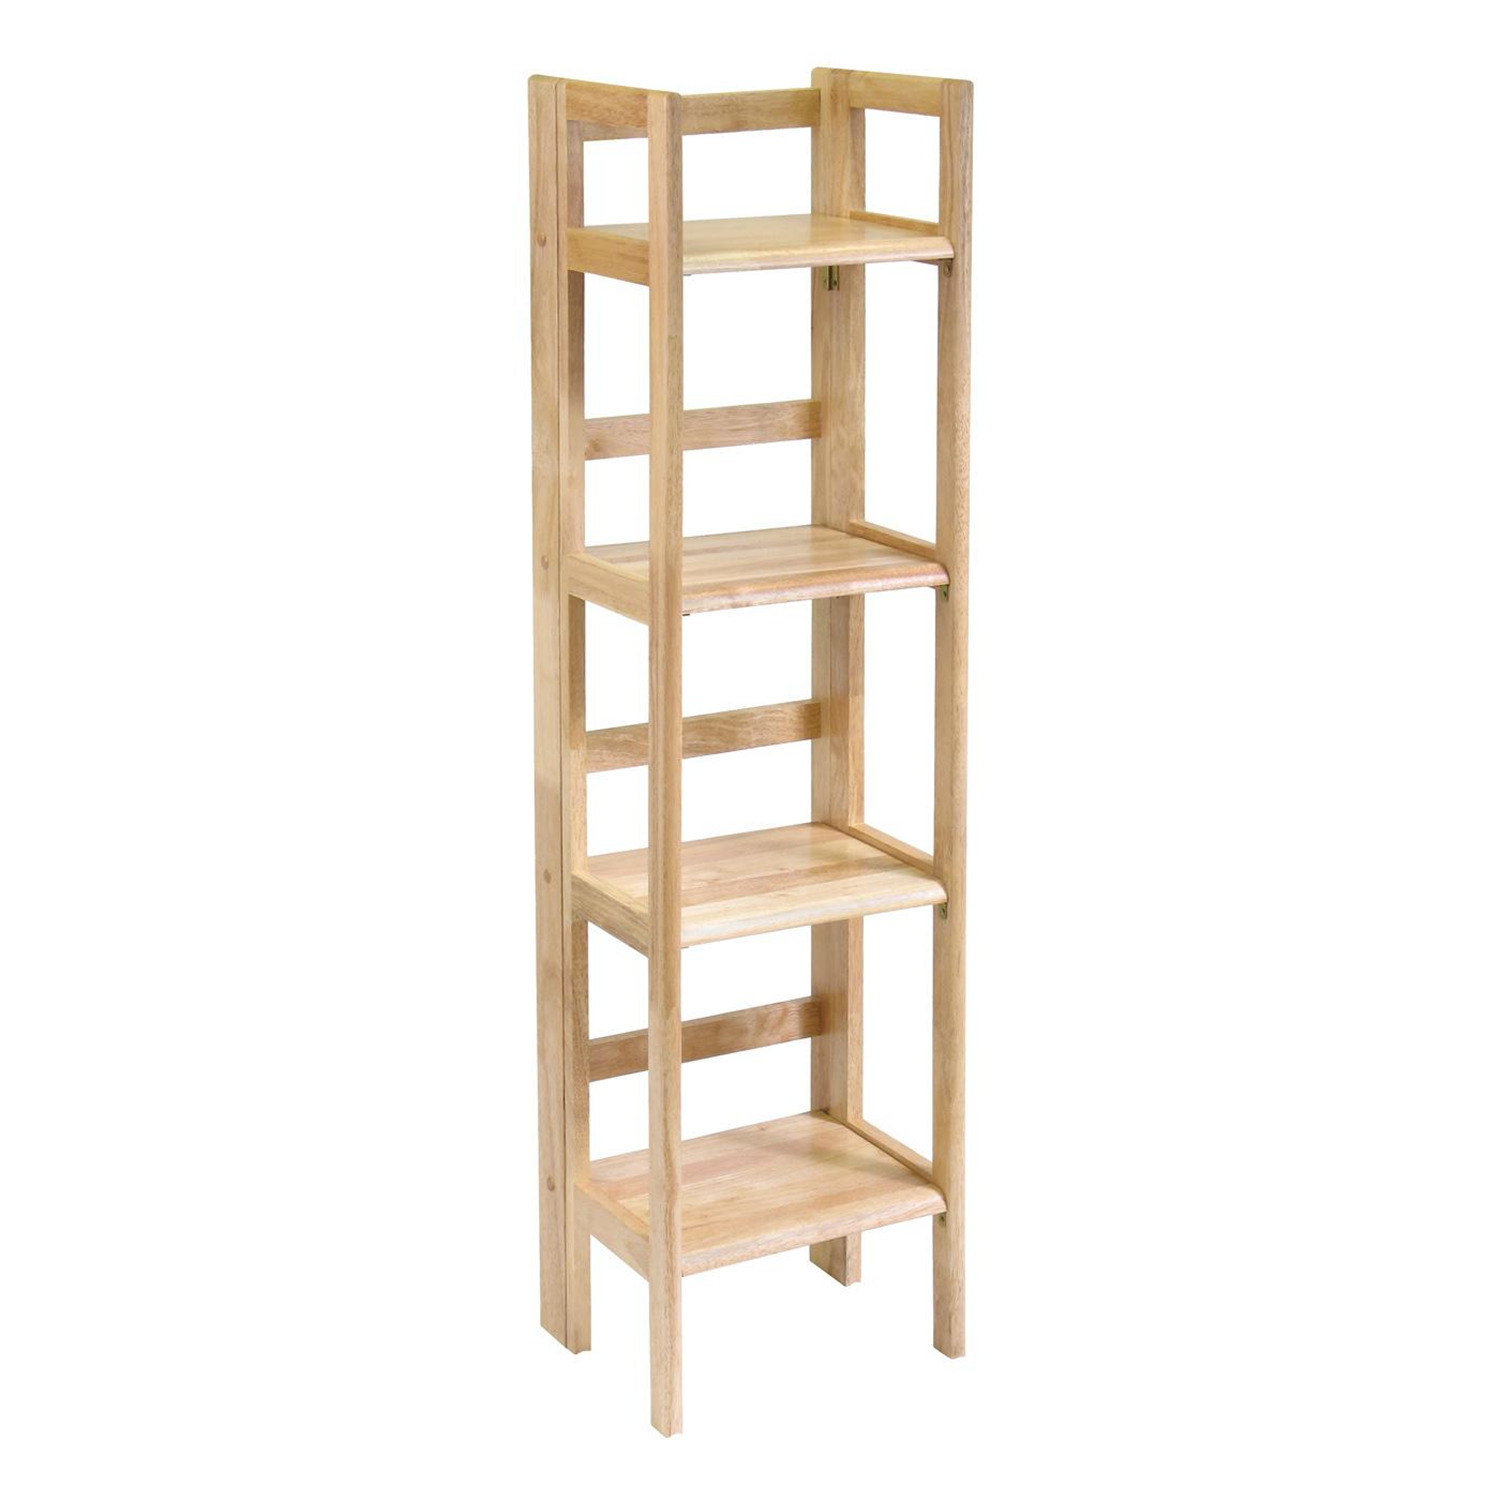 Winsome 4-Tier Foldable Shelf, Narrow by OJ Commerce 81852 - $107.99